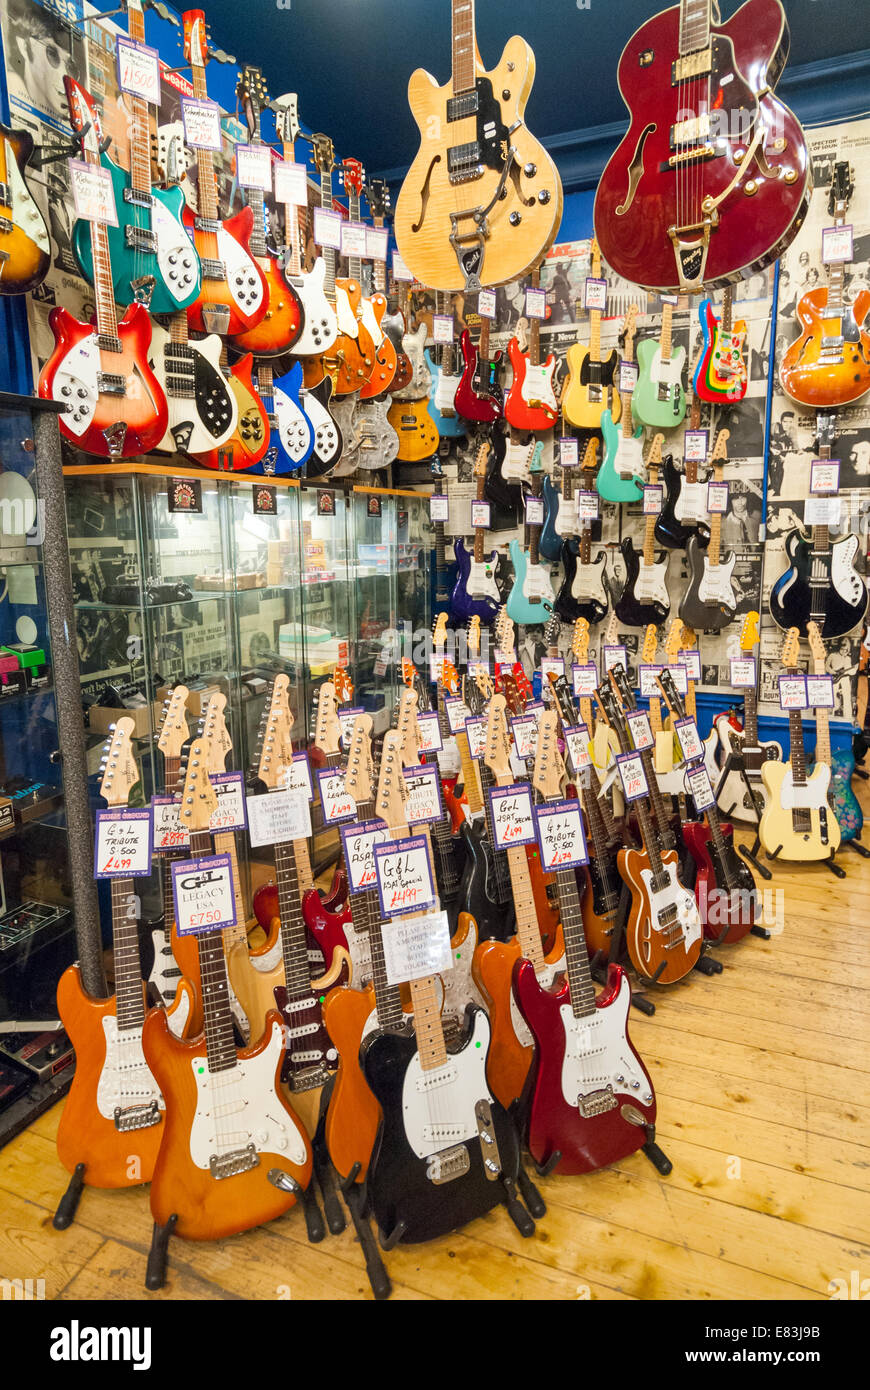 electric guitars in andy 39 s guitar shop in denmark street london stock photo royalty free image. Black Bedroom Furniture Sets. Home Design Ideas